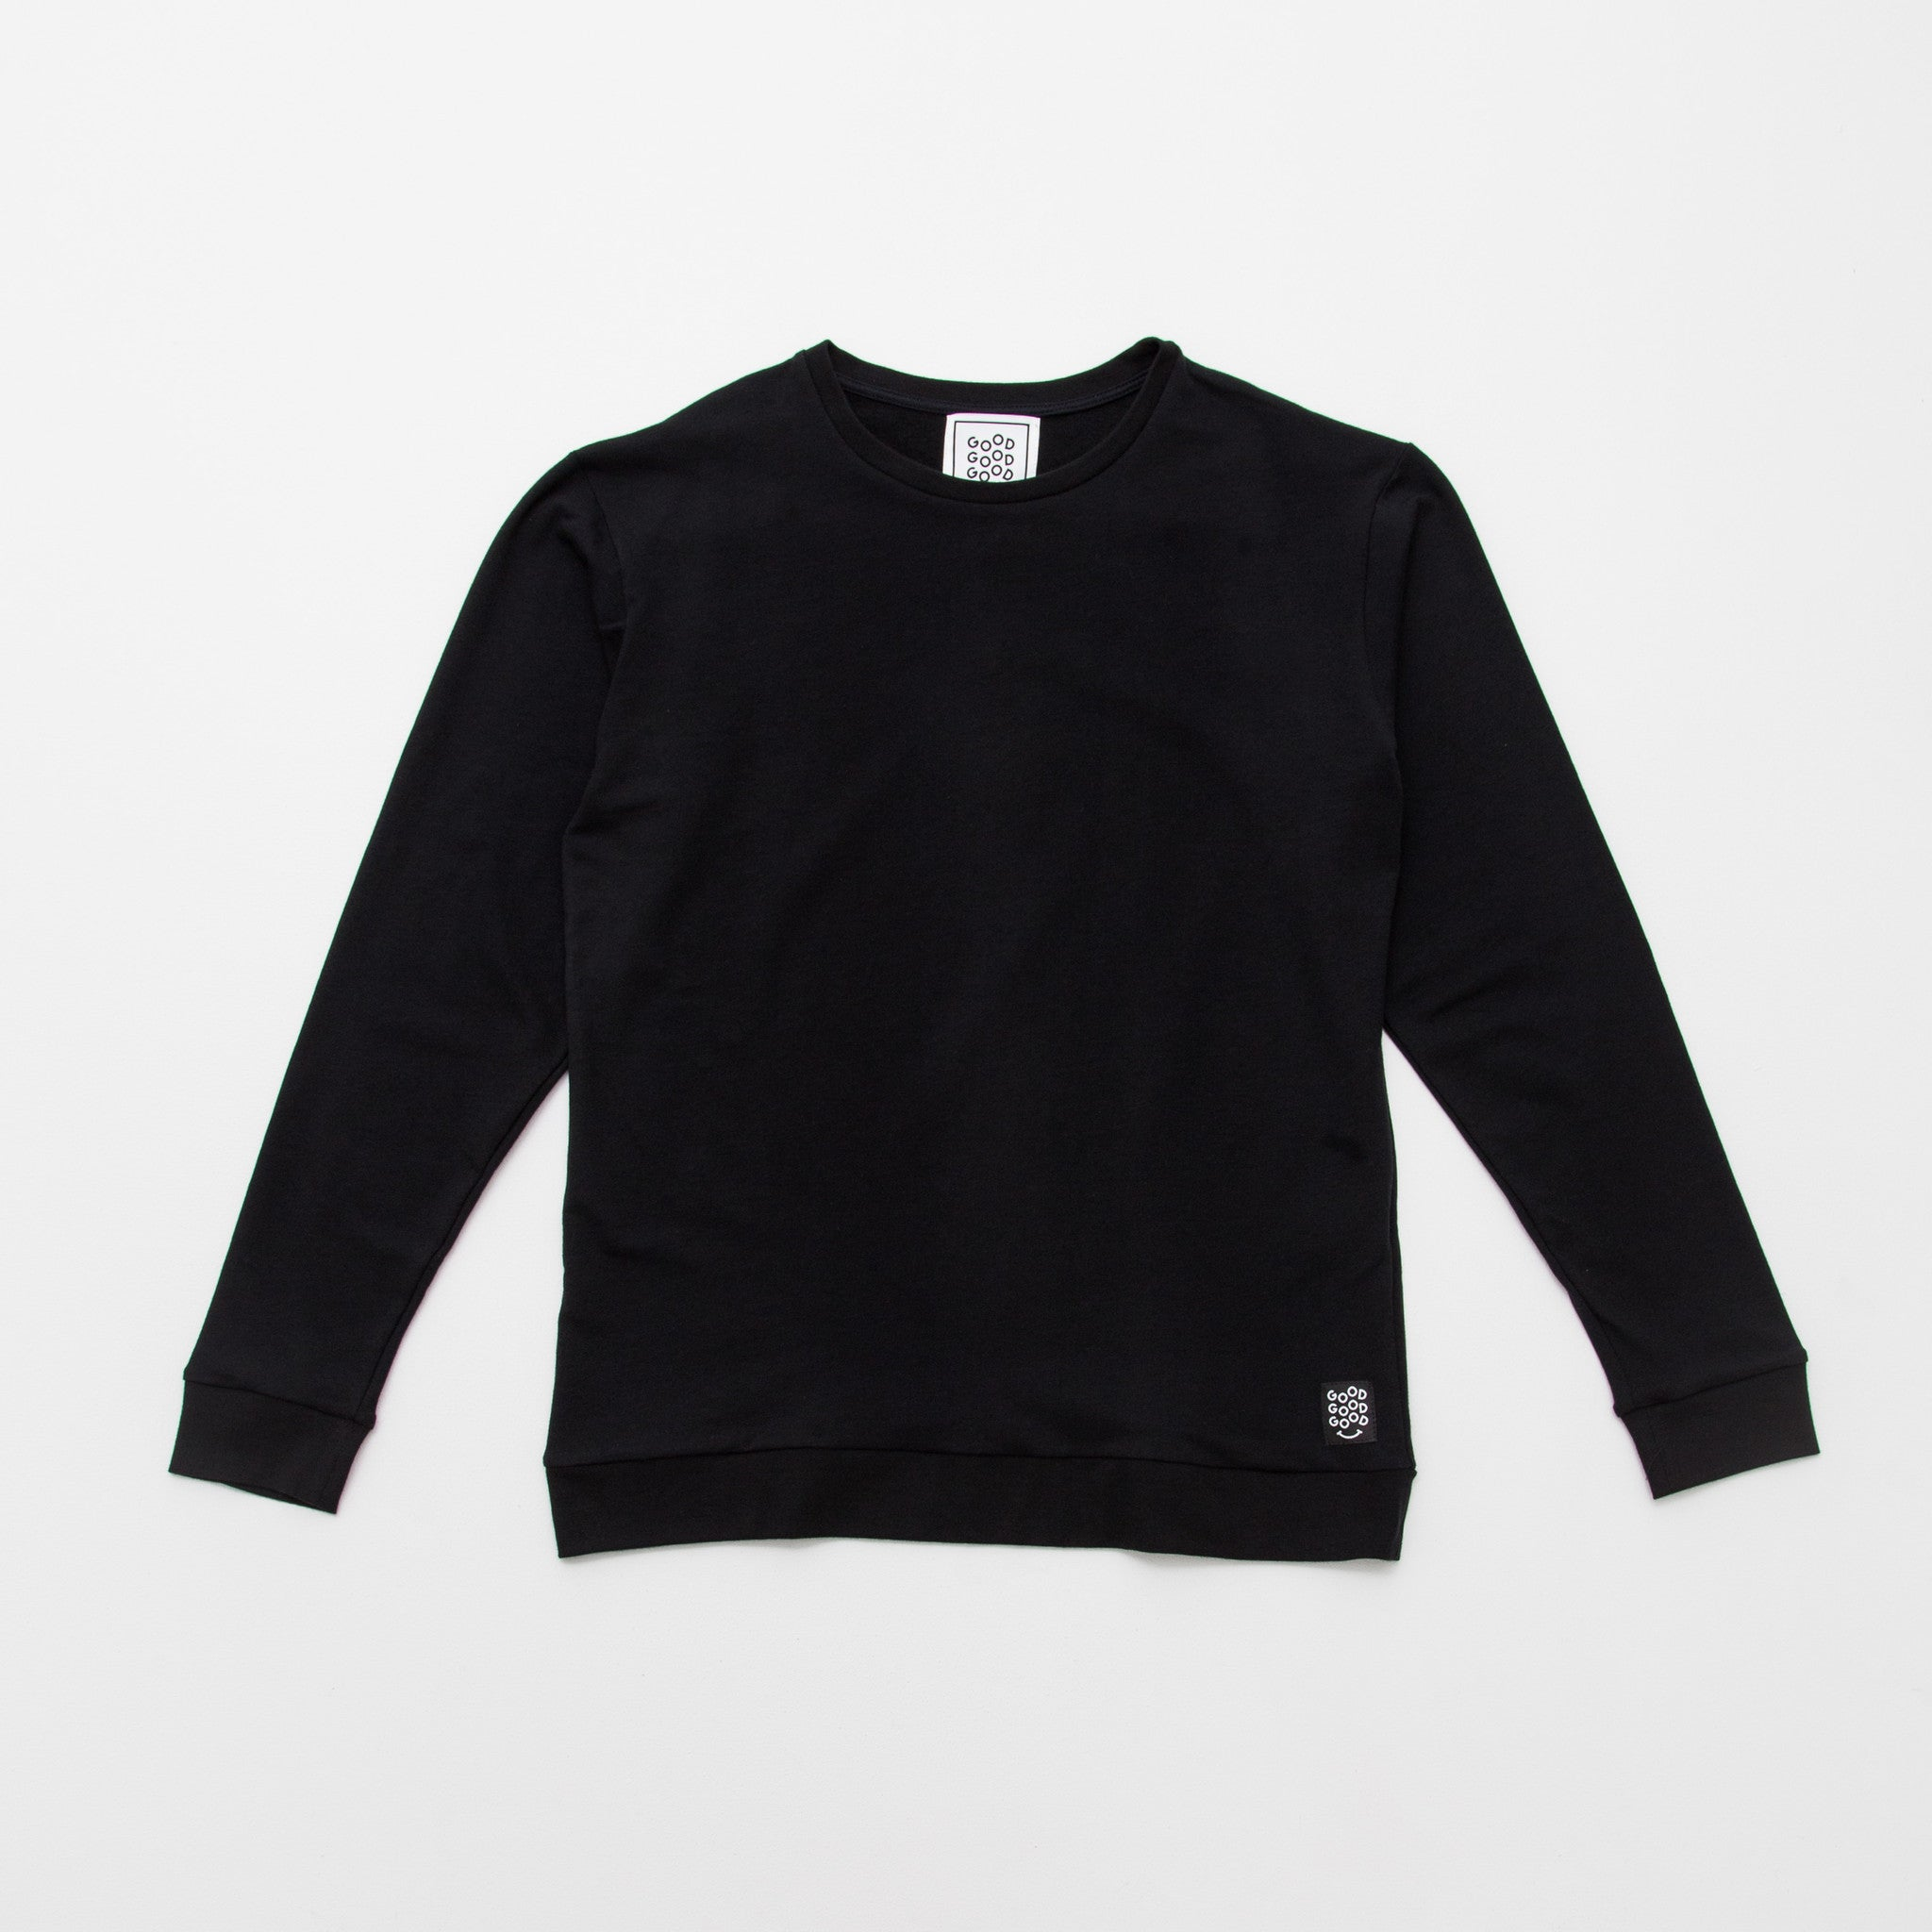 Good Good Good Crew Neck Sweater Front - Black - A Store